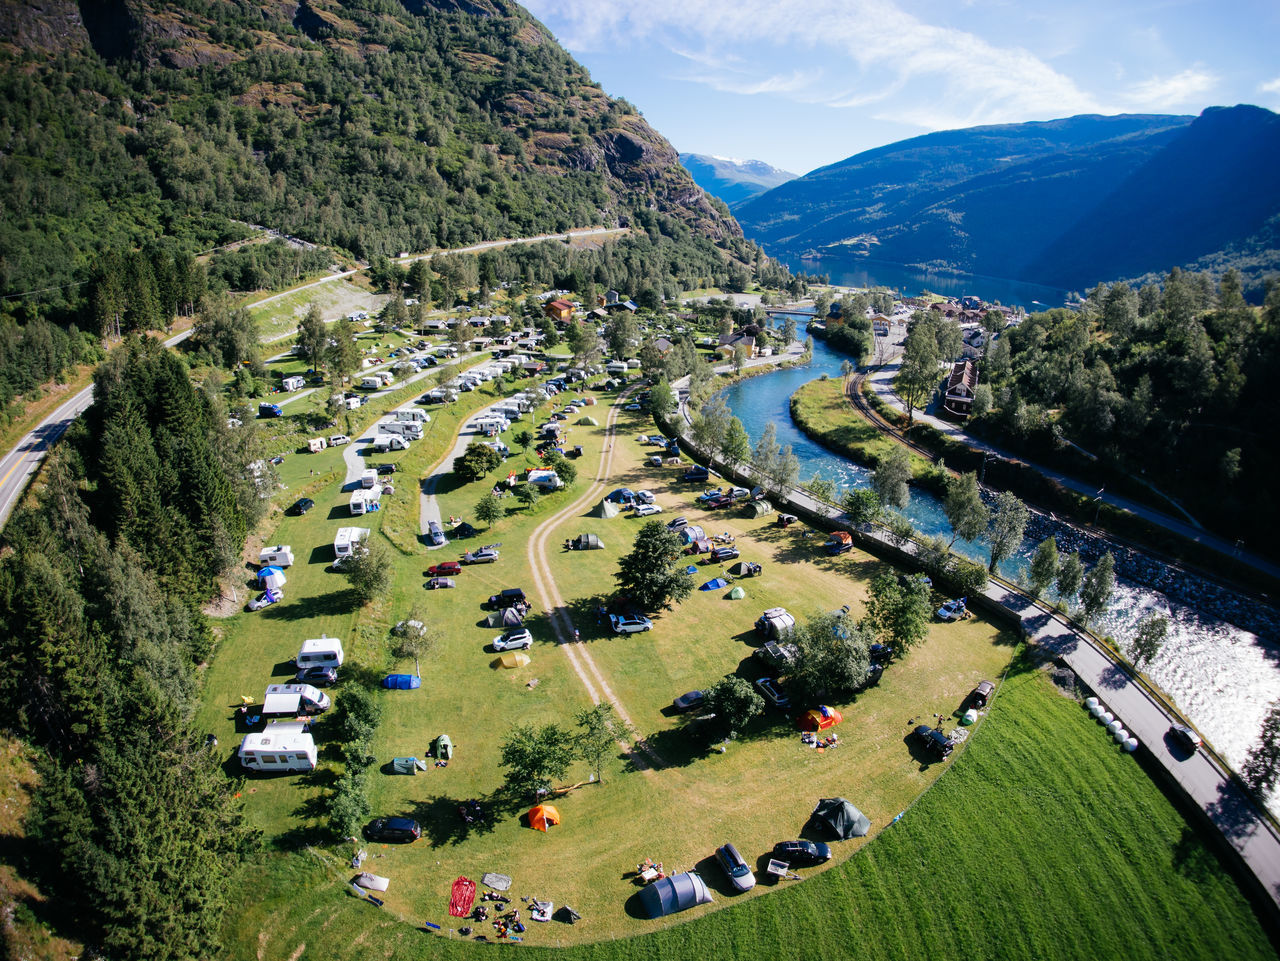 High Angle View Of Campsite